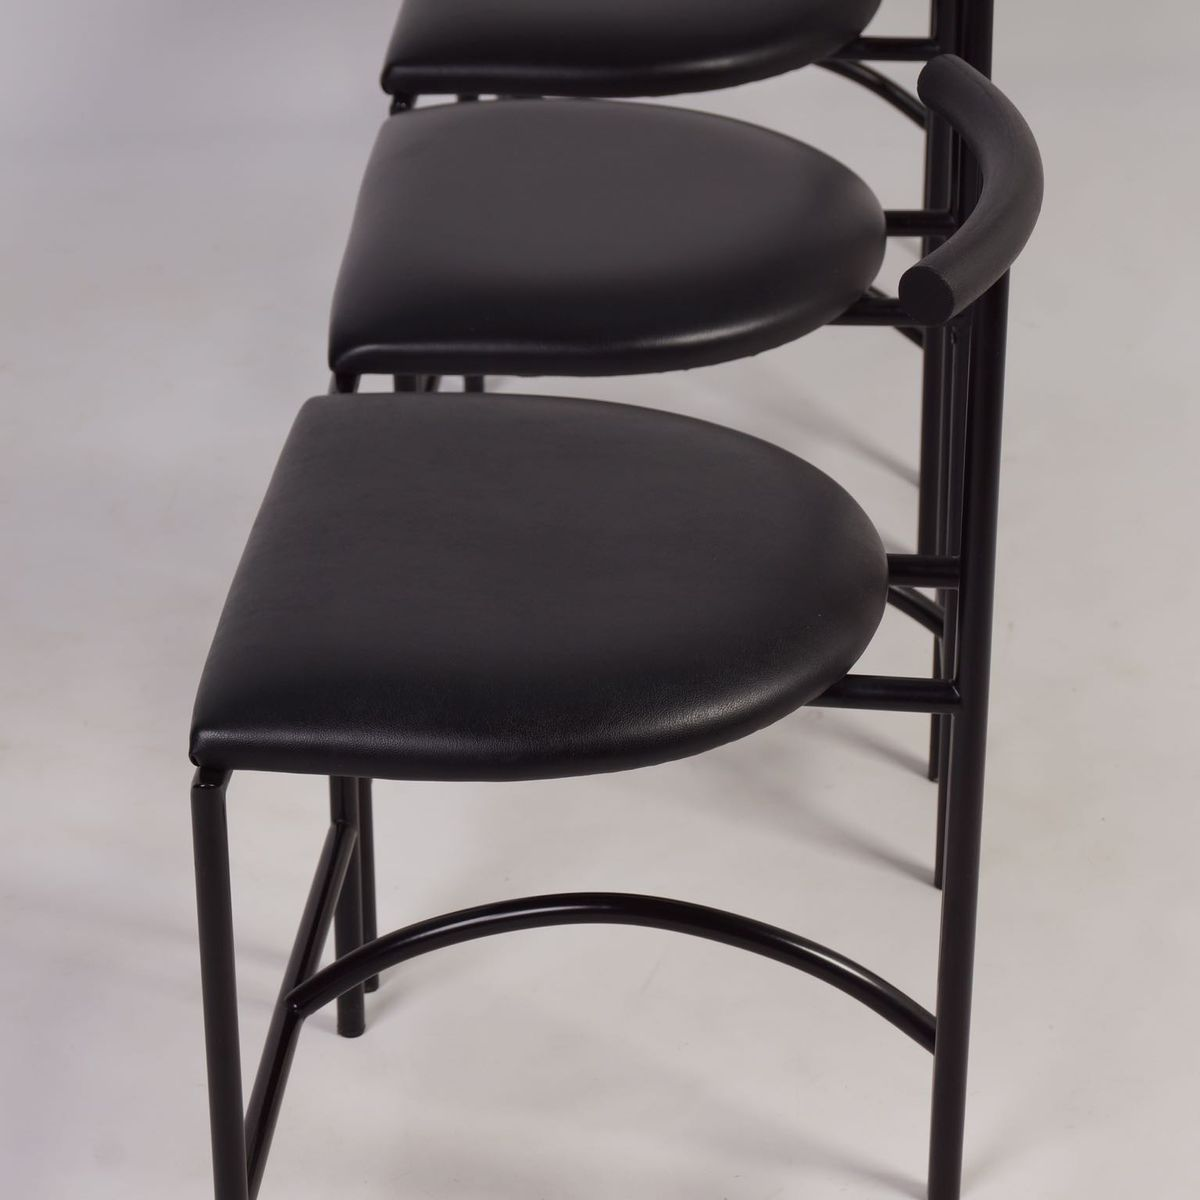 vintage italian tokyo dining chairs by rodney kinsman for bieffeplast 1980s set of 4 for sale. Black Bedroom Furniture Sets. Home Design Ideas